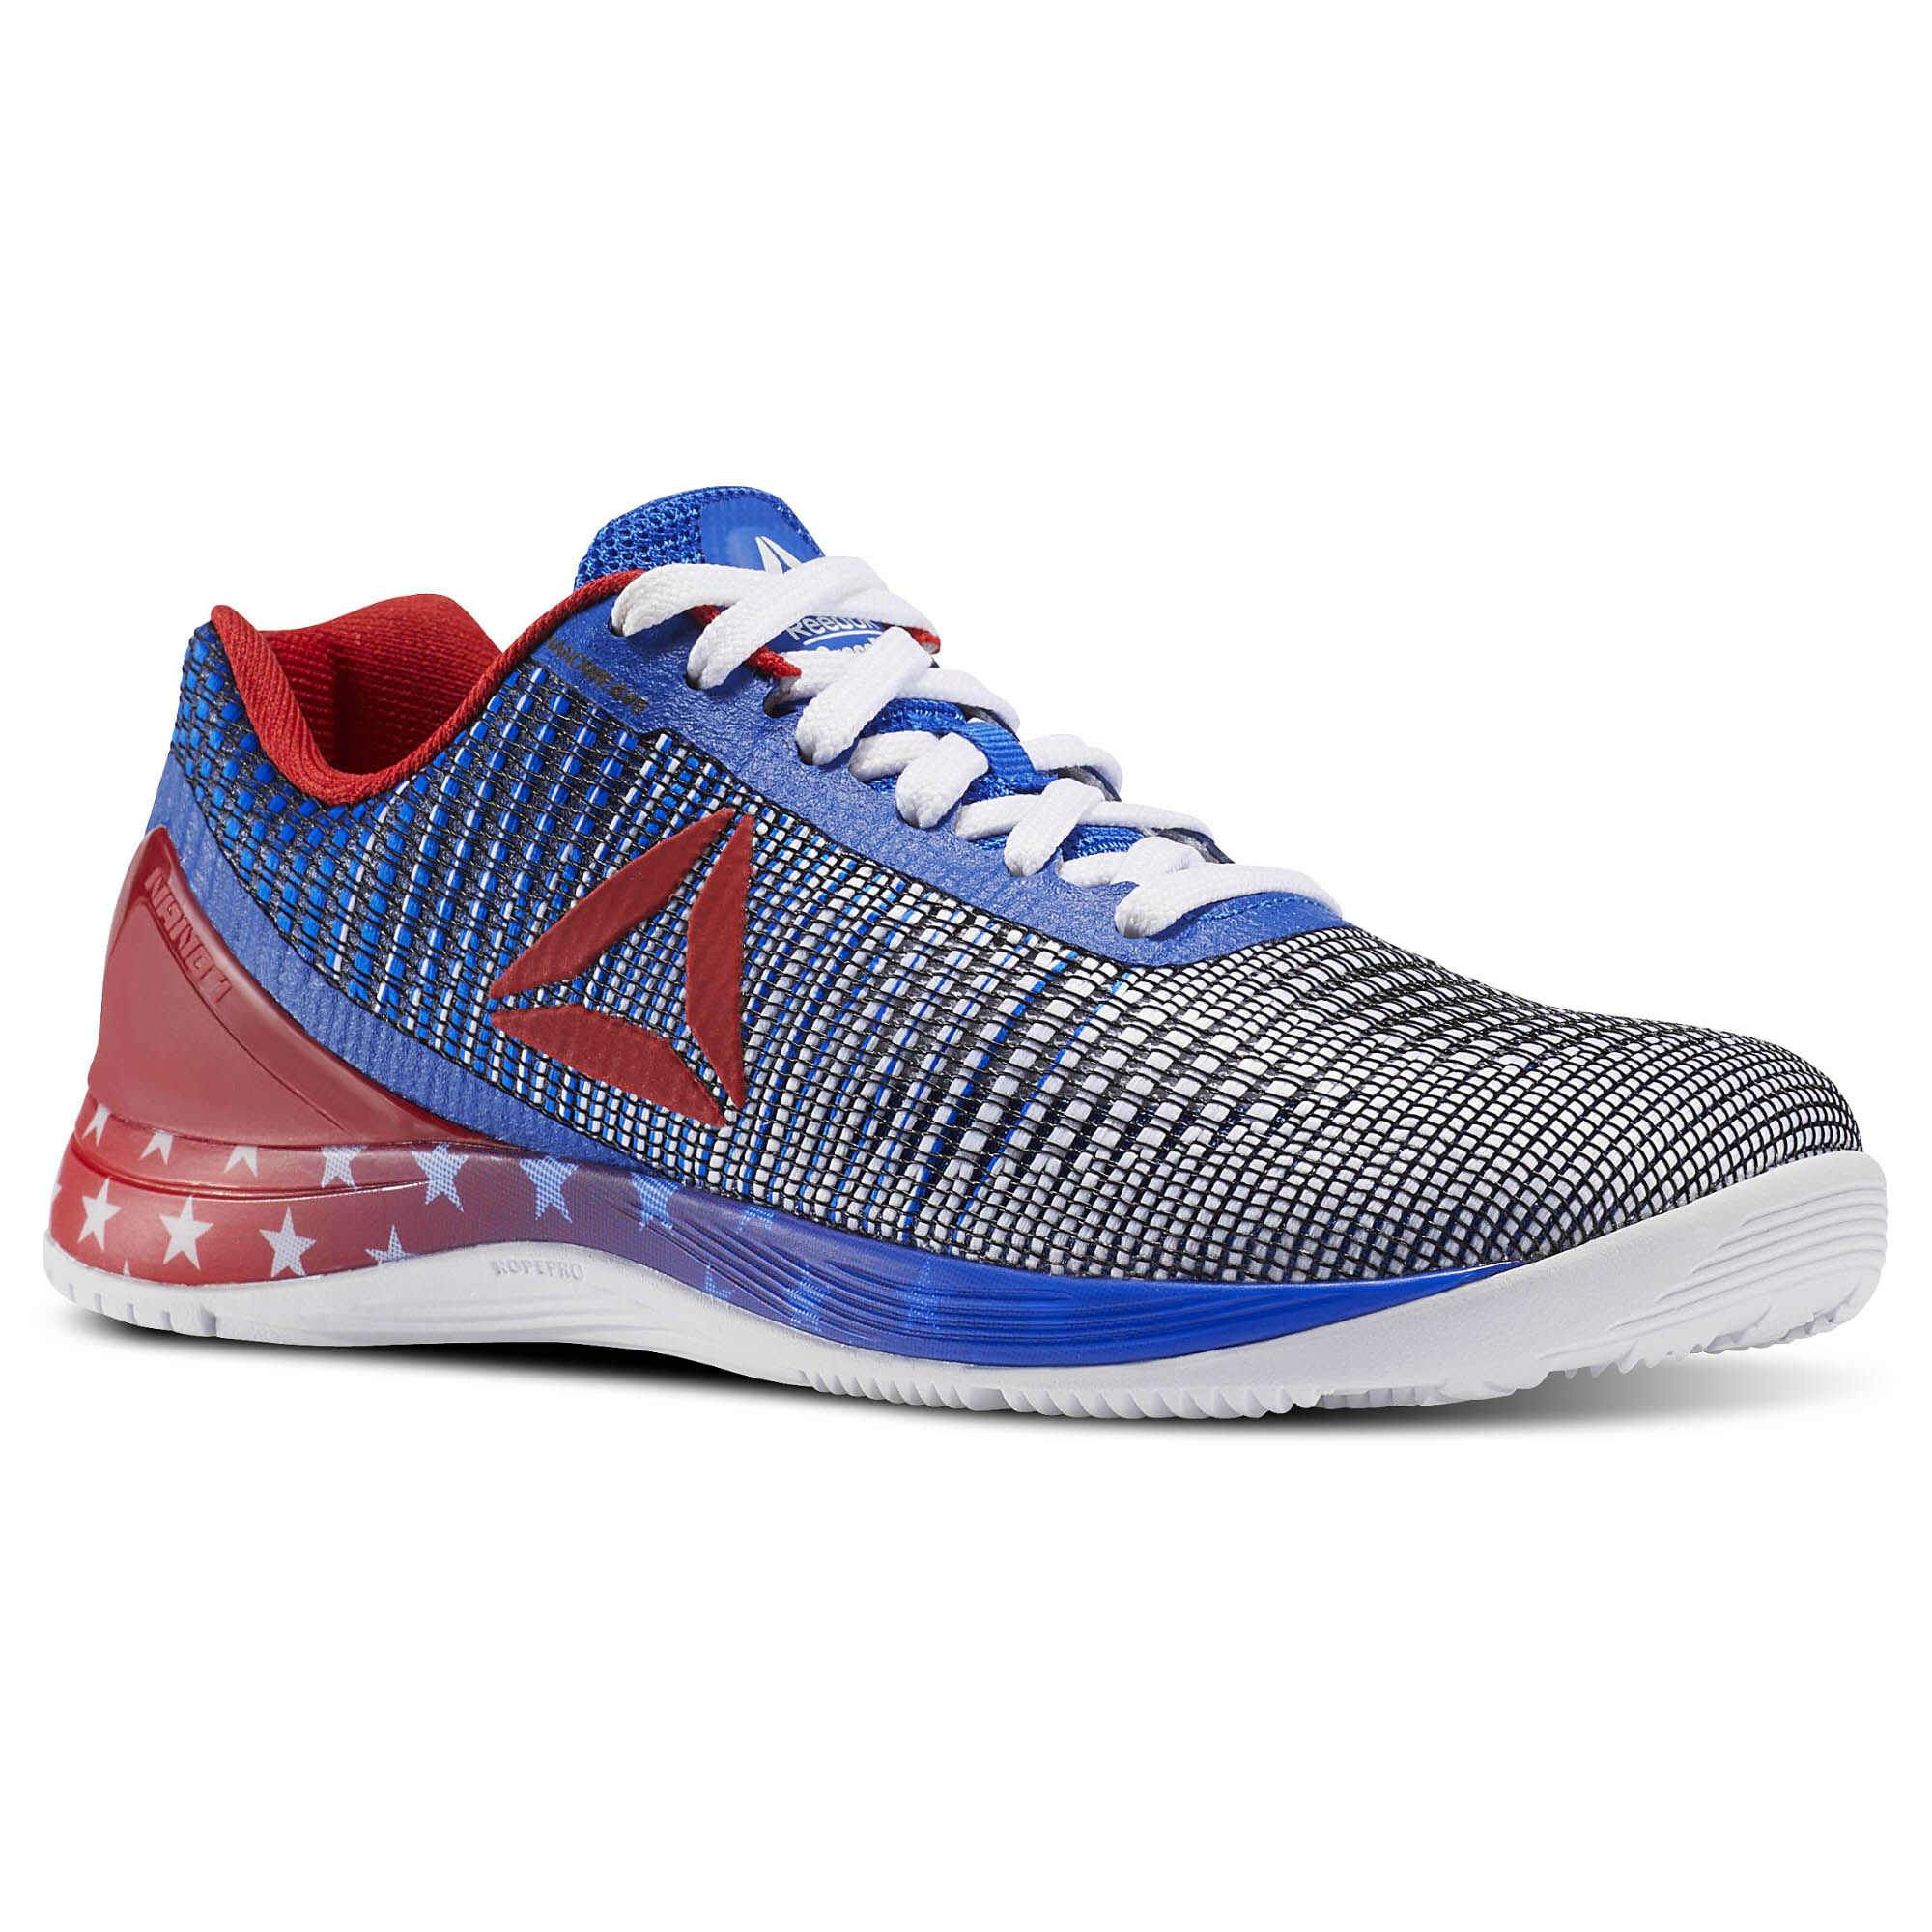 Reebok - Reebok CrossFit Nano 7 Weave 38501 Pack Vital Blue/White/Primal  Red. Read all 478 reviews. Men Fitness & Training